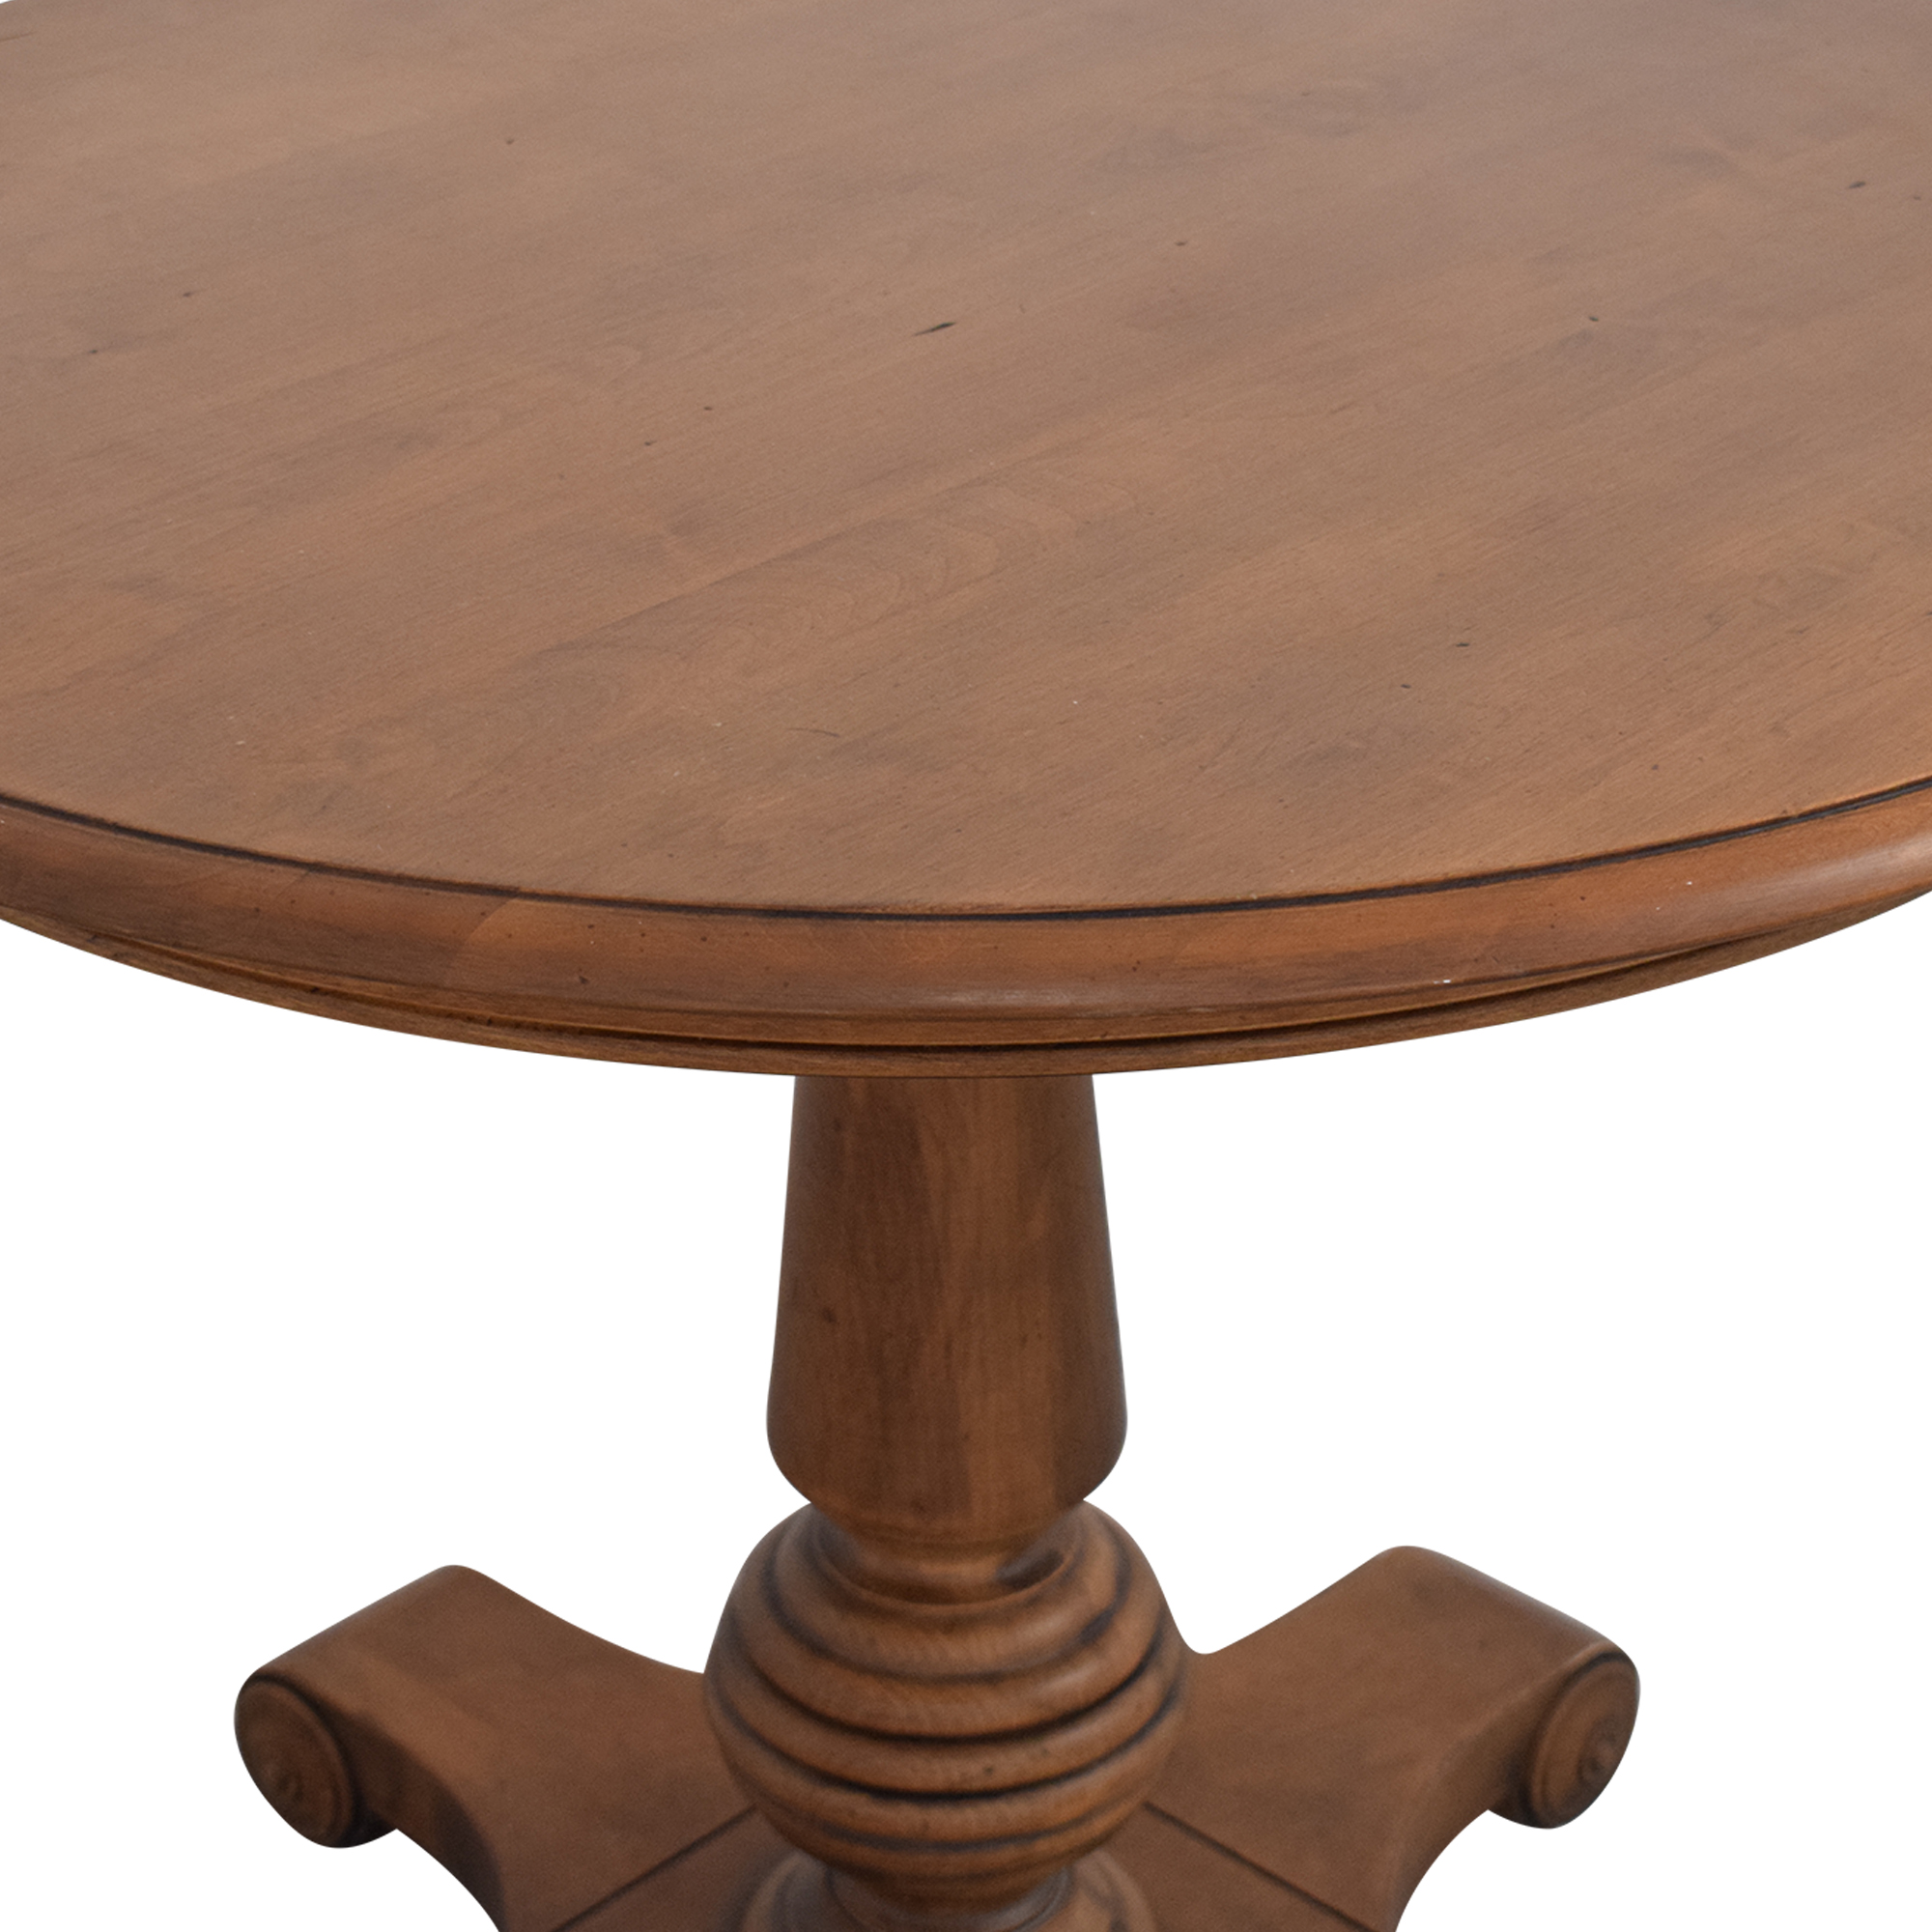 Ethan Allen Ethan Allen New Country Round Side Table pa